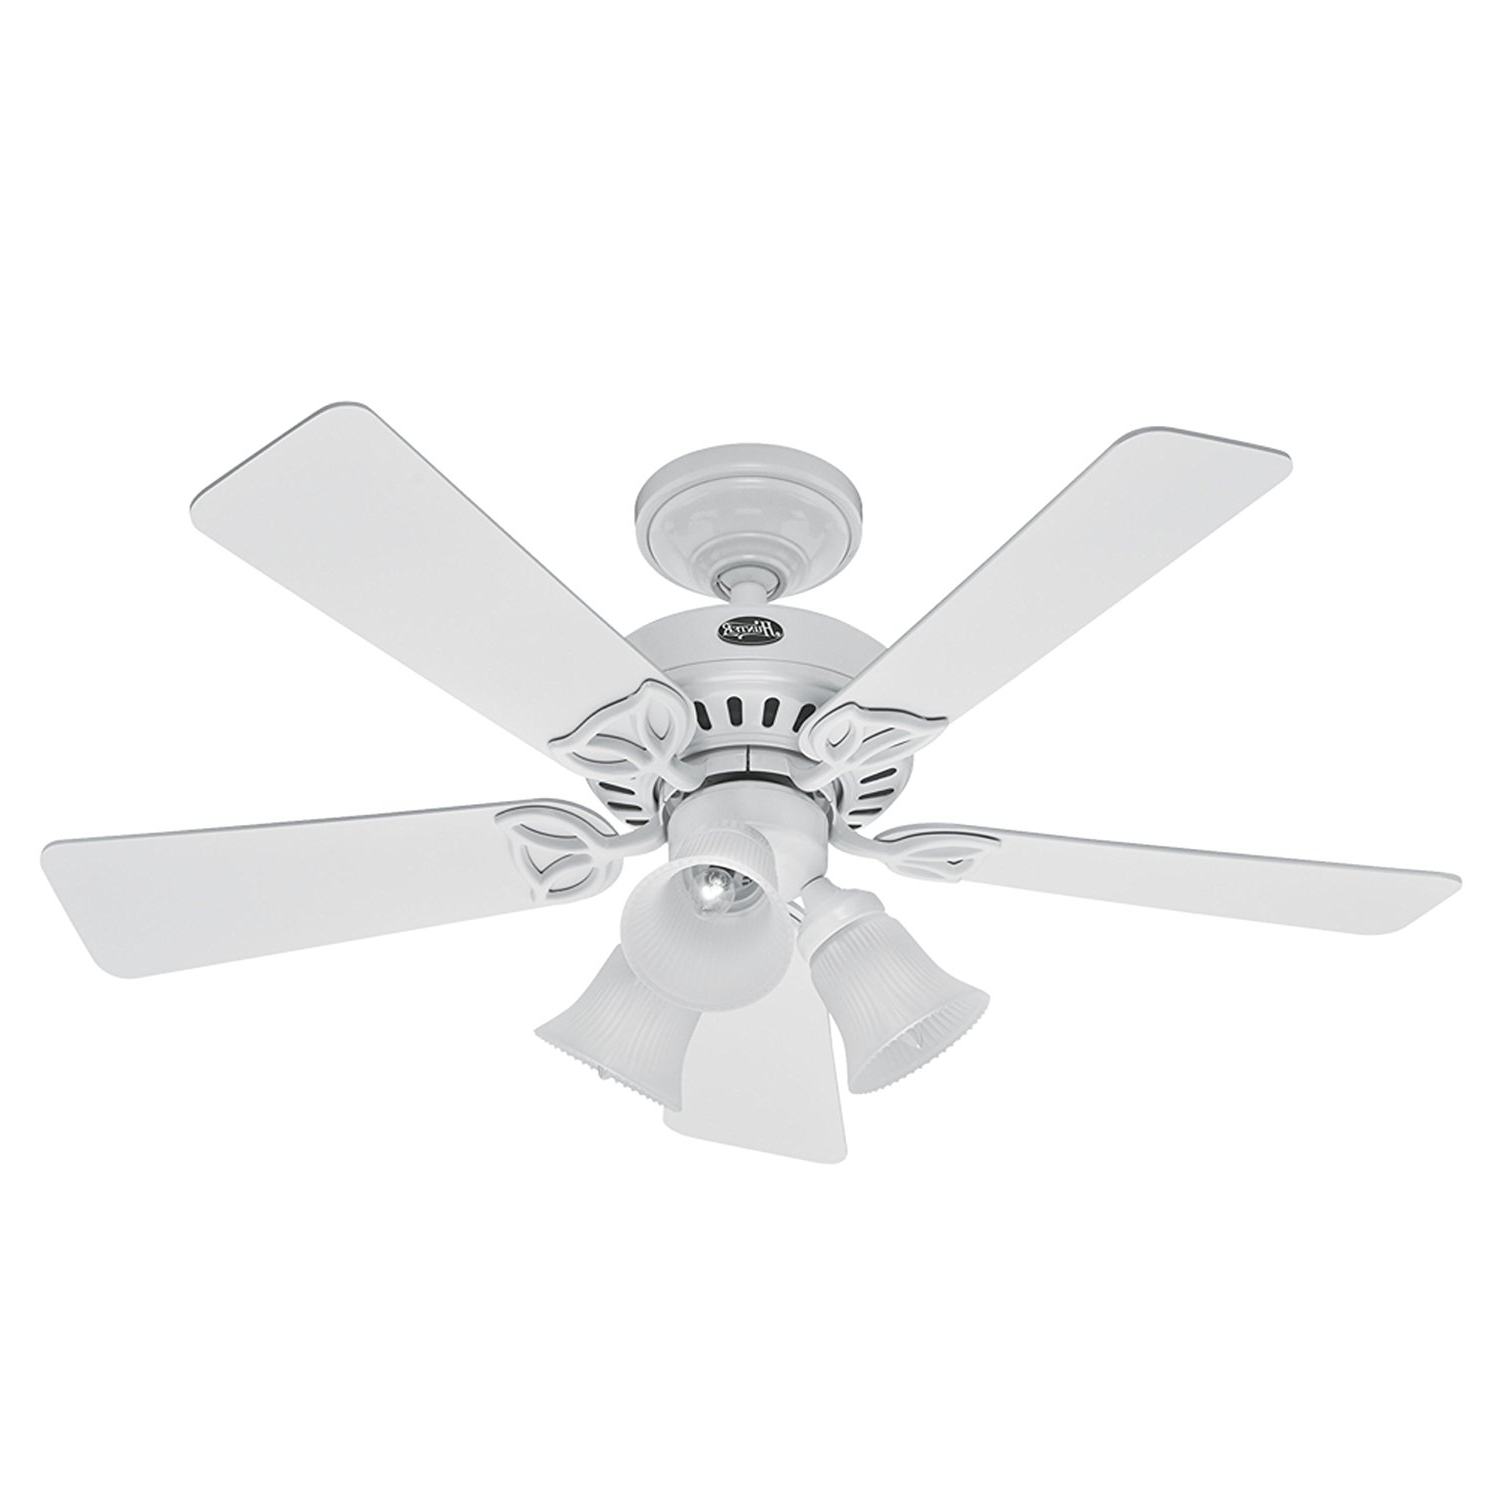 Ceiling Fan: Appealing Hunter Ceiling Fans Ideas Ceiling Fans Regarding Most Up To Date Hunter Outdoor Ceiling Fans With White Lights (View 2 of 20)